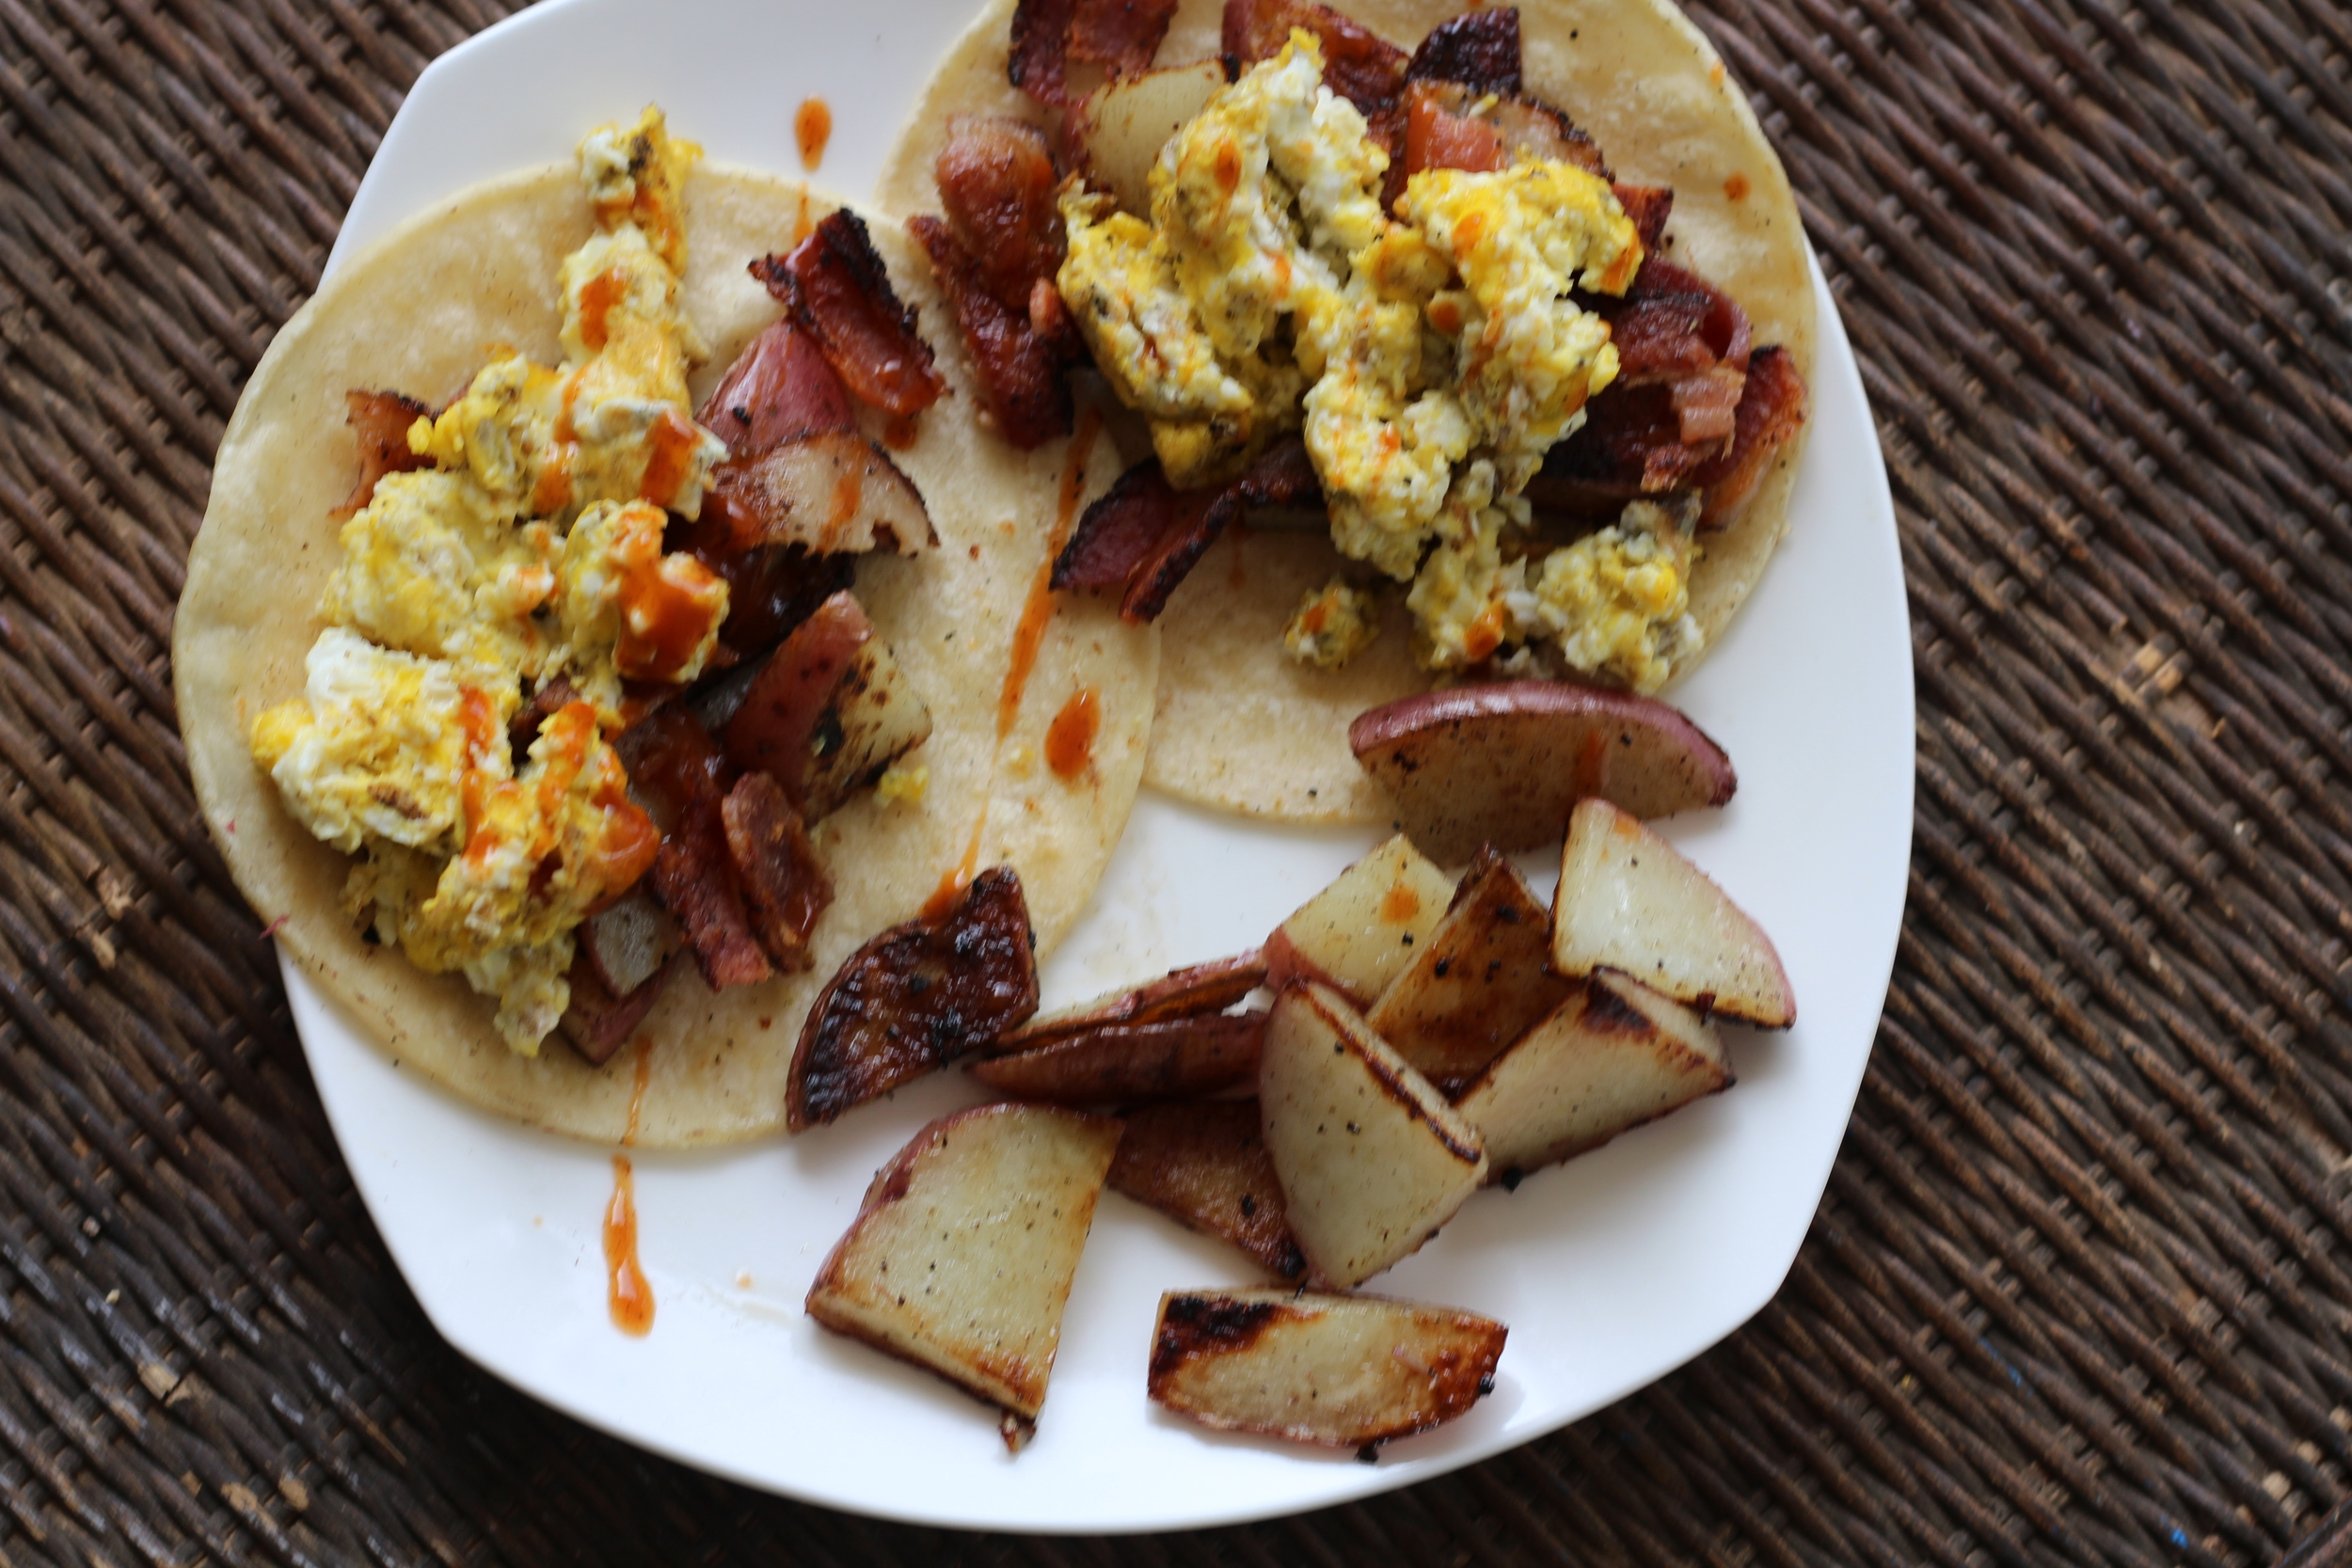 Dinner: Breakfast for dinner! Corn Tortillas, Eggs, Bacon, Red Potato with a little Sriracha Sauce!     Enjoy!  xoxo  B&B